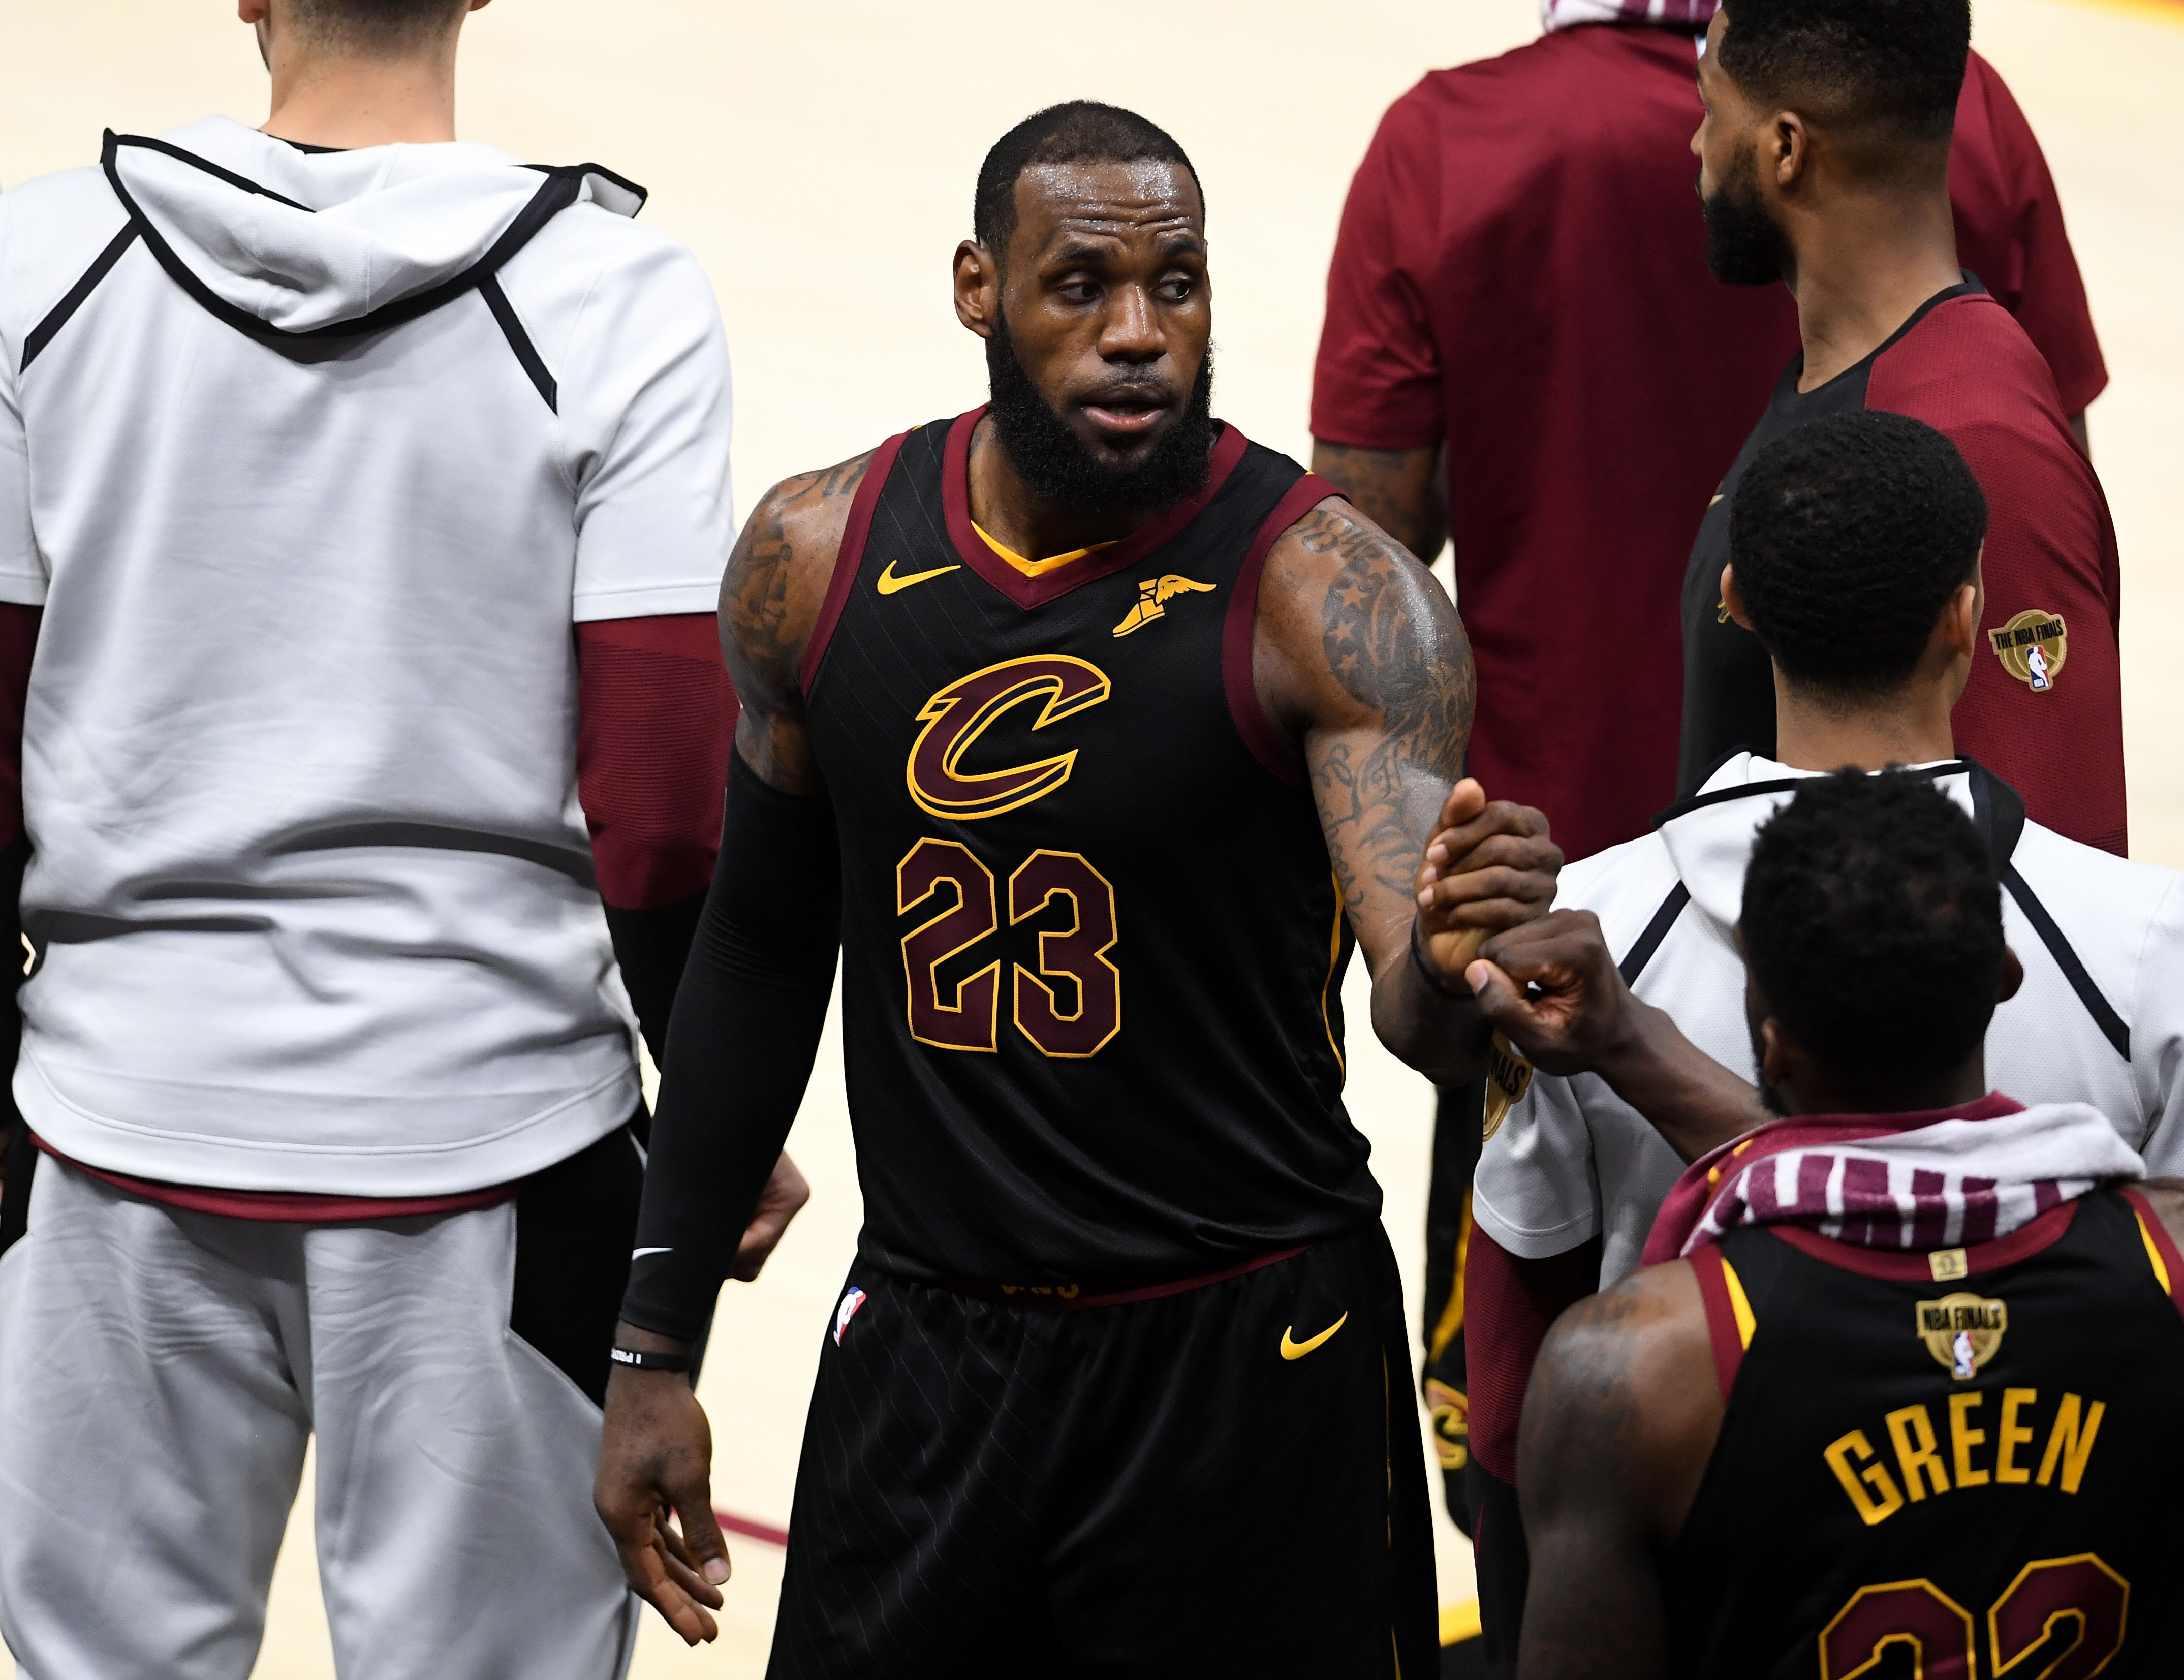 LeBron James still hasn't met with Lakers coach Luke Walton, report says